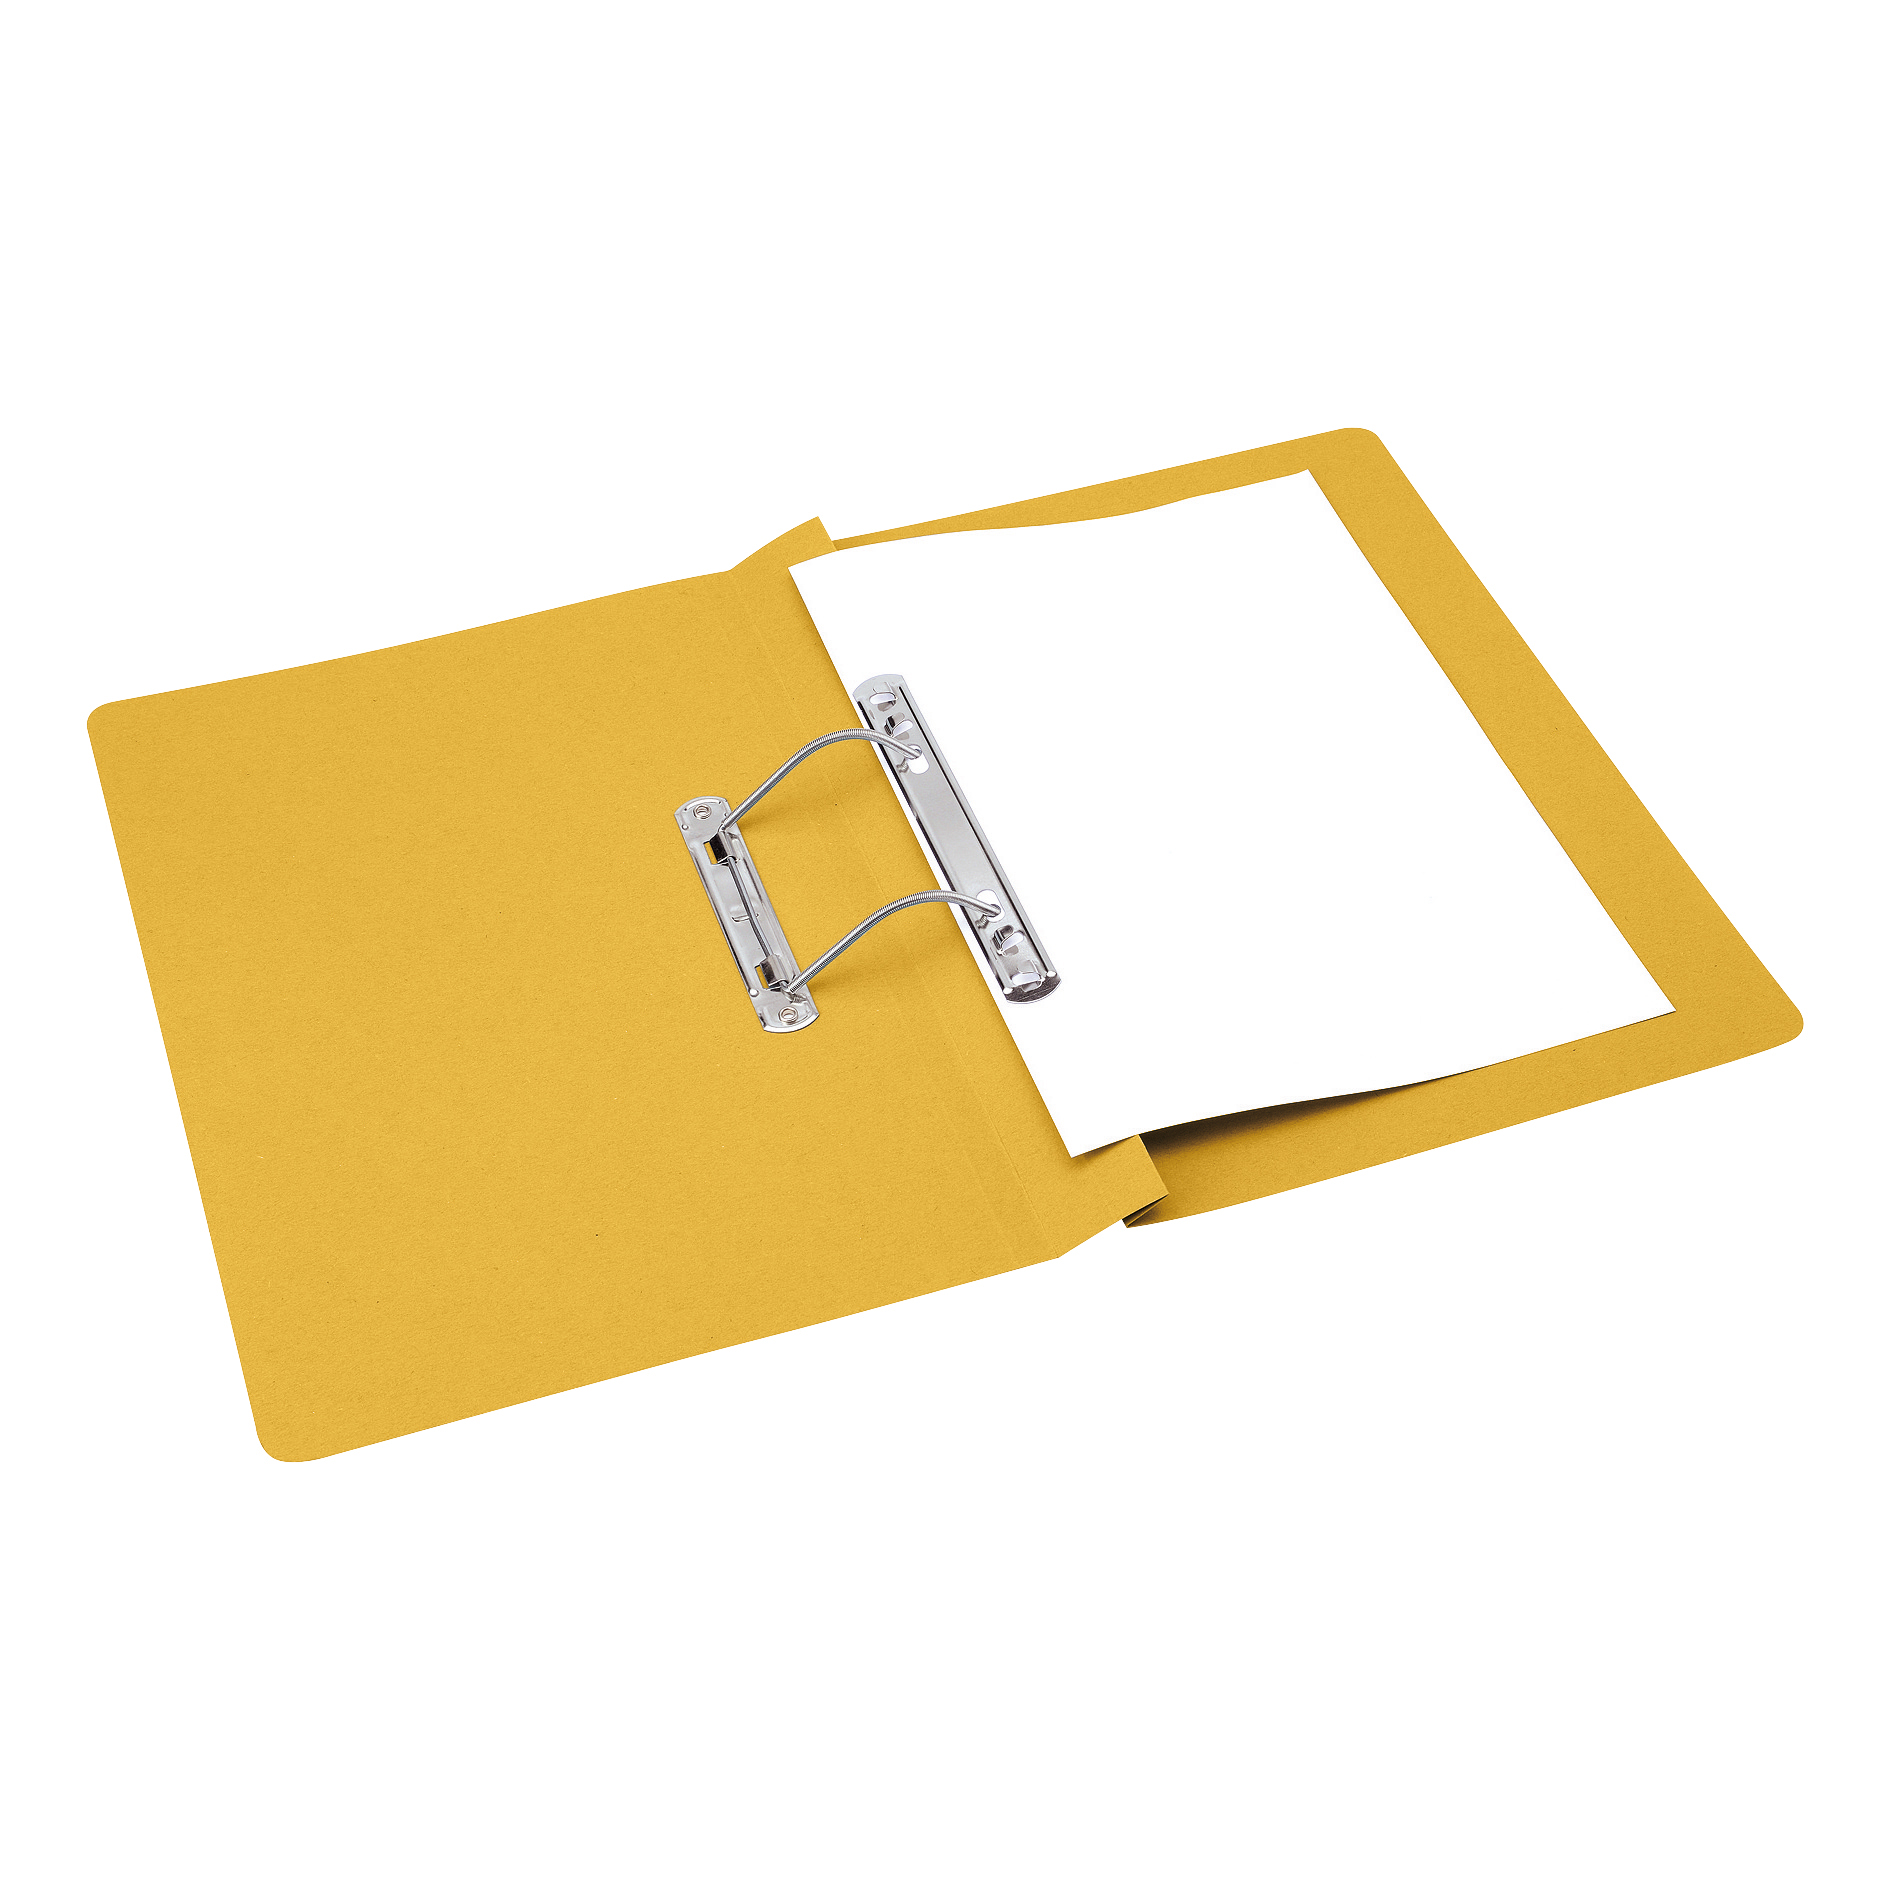 5 Star Office Transfer Spring File 315gsm 38mm Foolscap Yellow